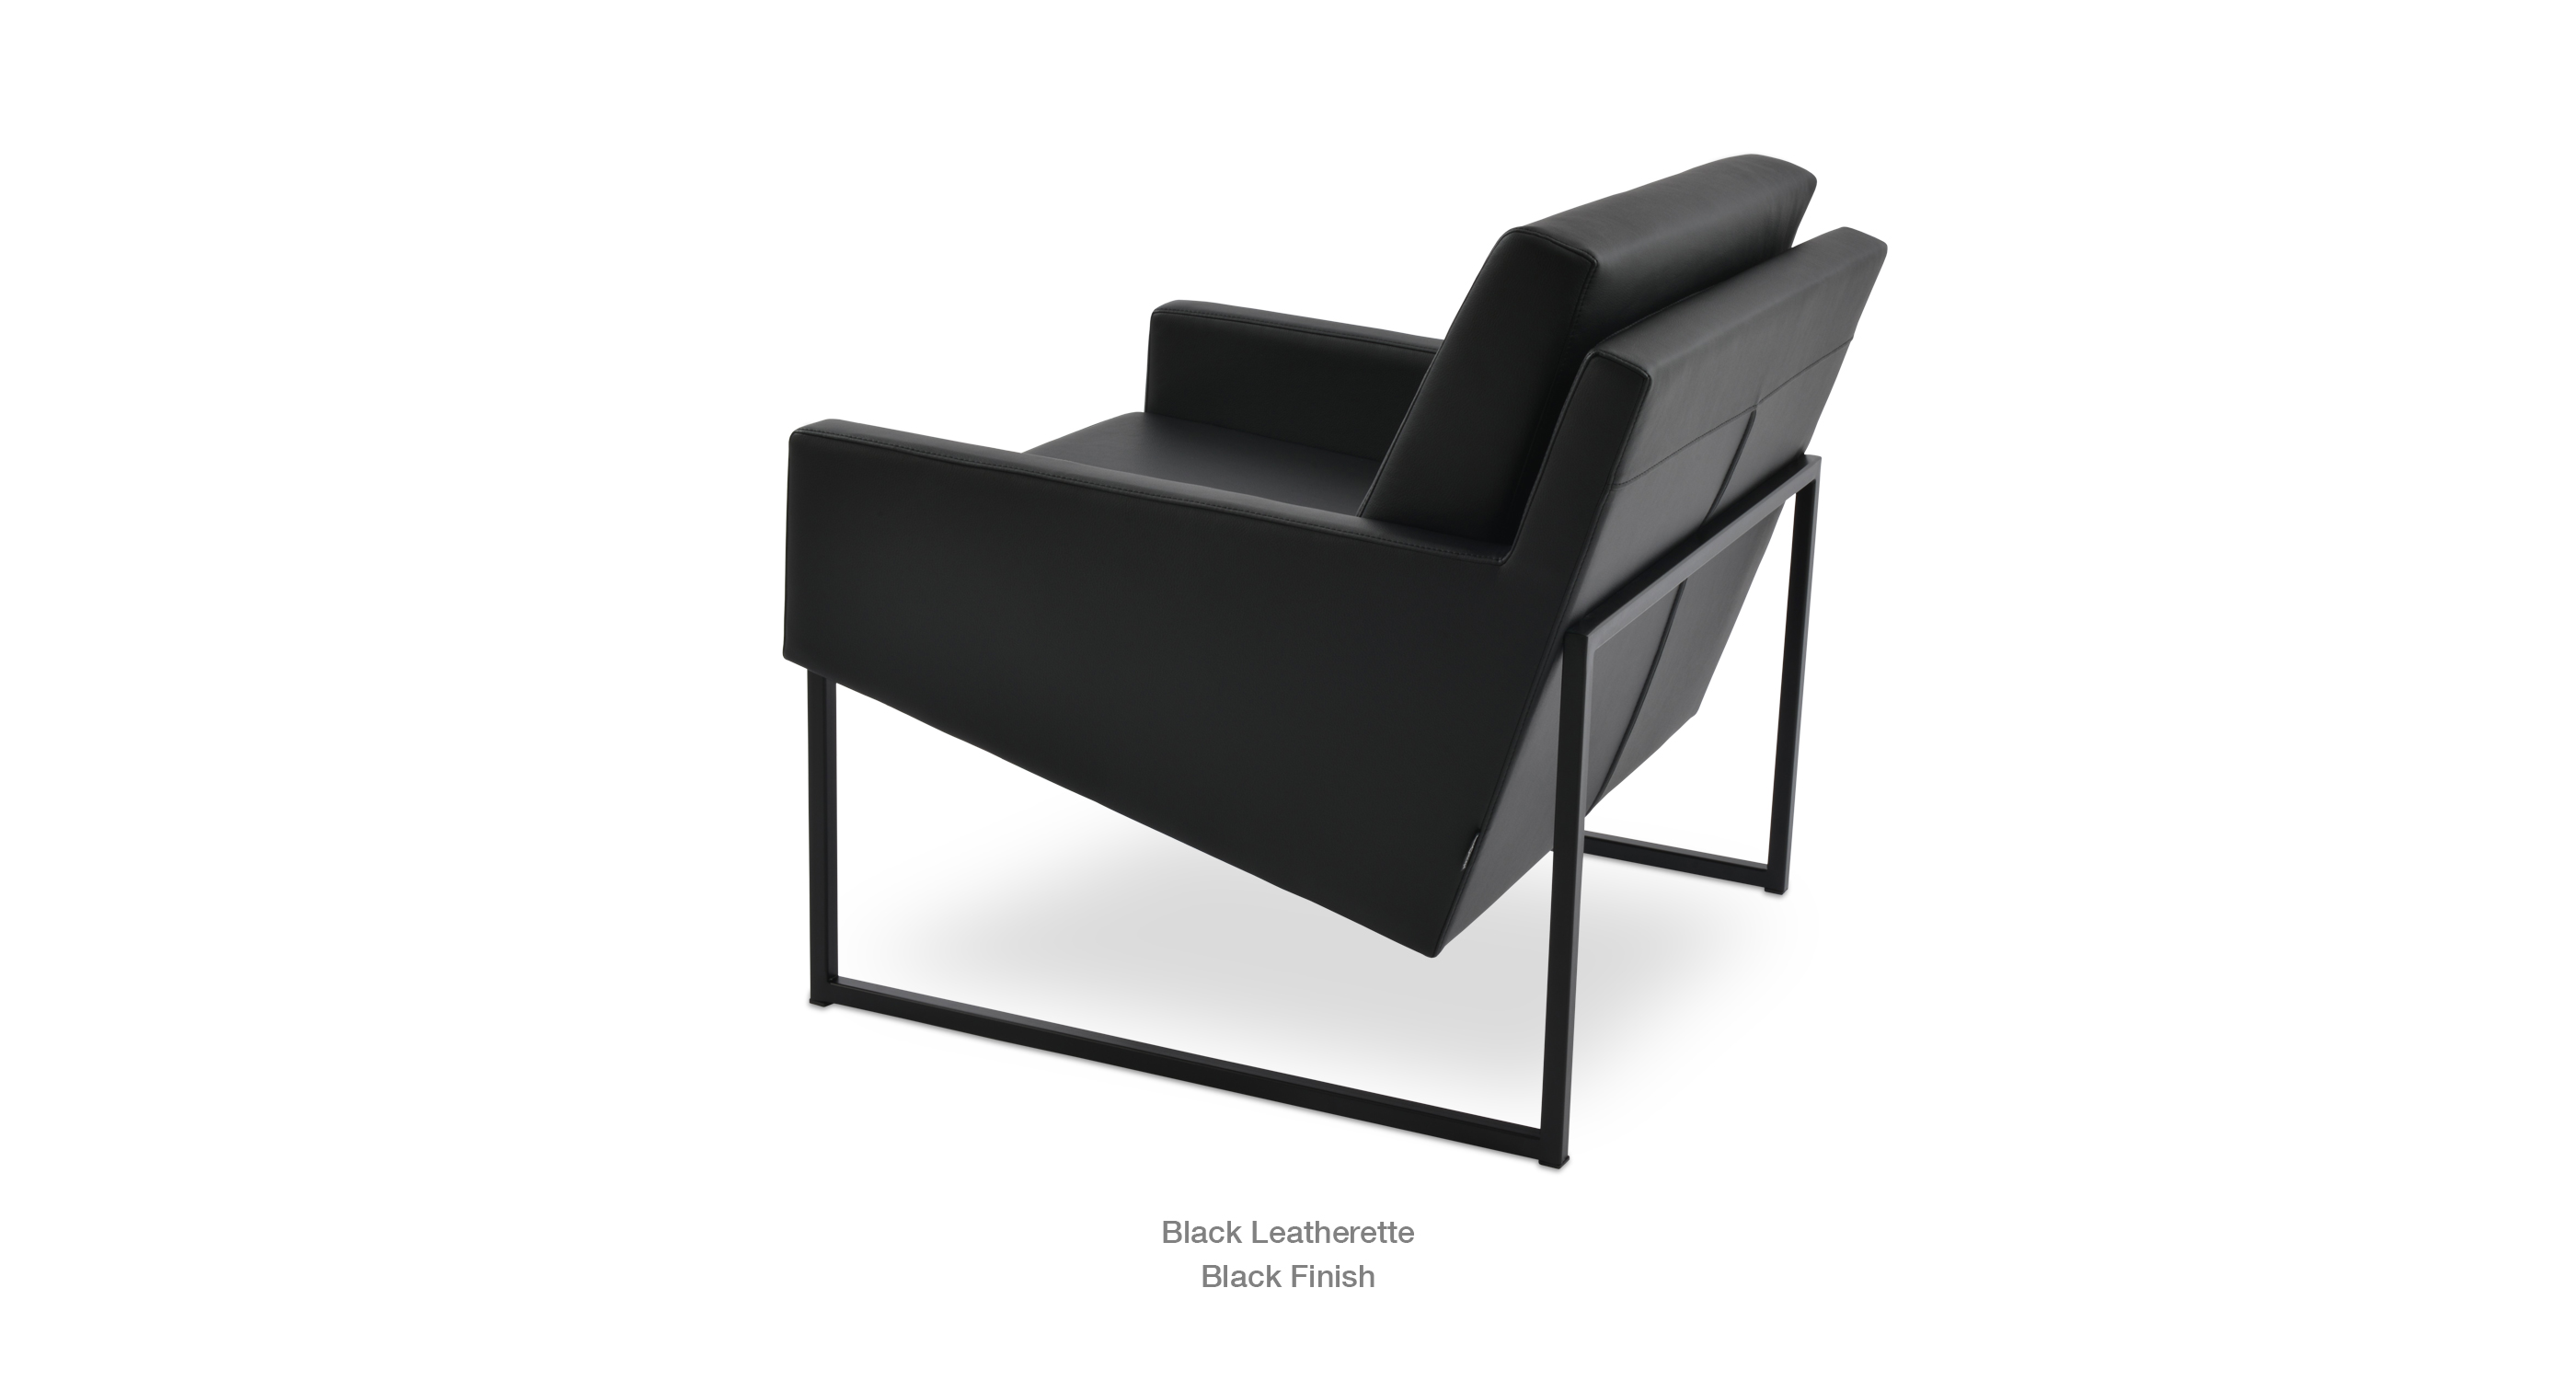 black leatherette - black base